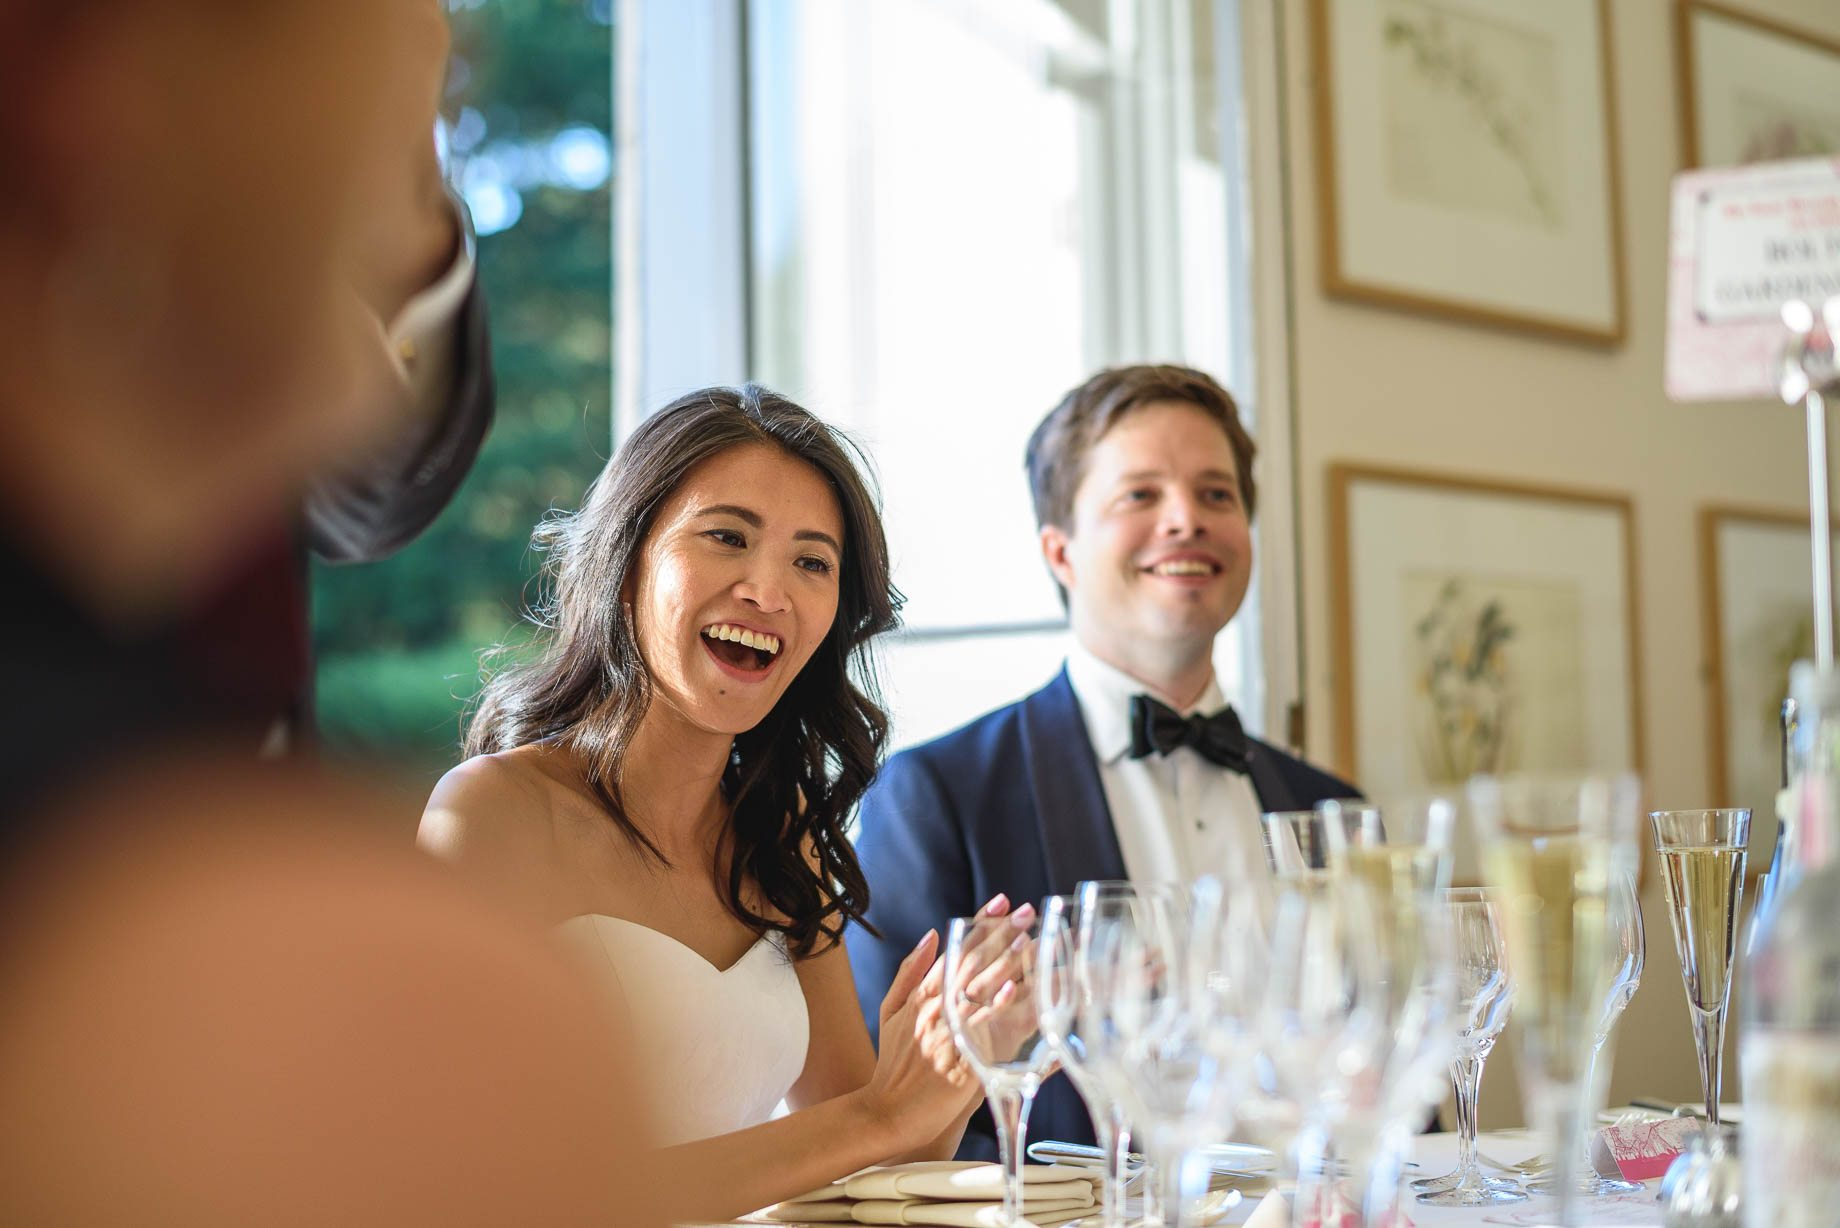 Kew Gardens wedding photography - Guy Collier Photography - Gloria and Frederik (112 of 173)